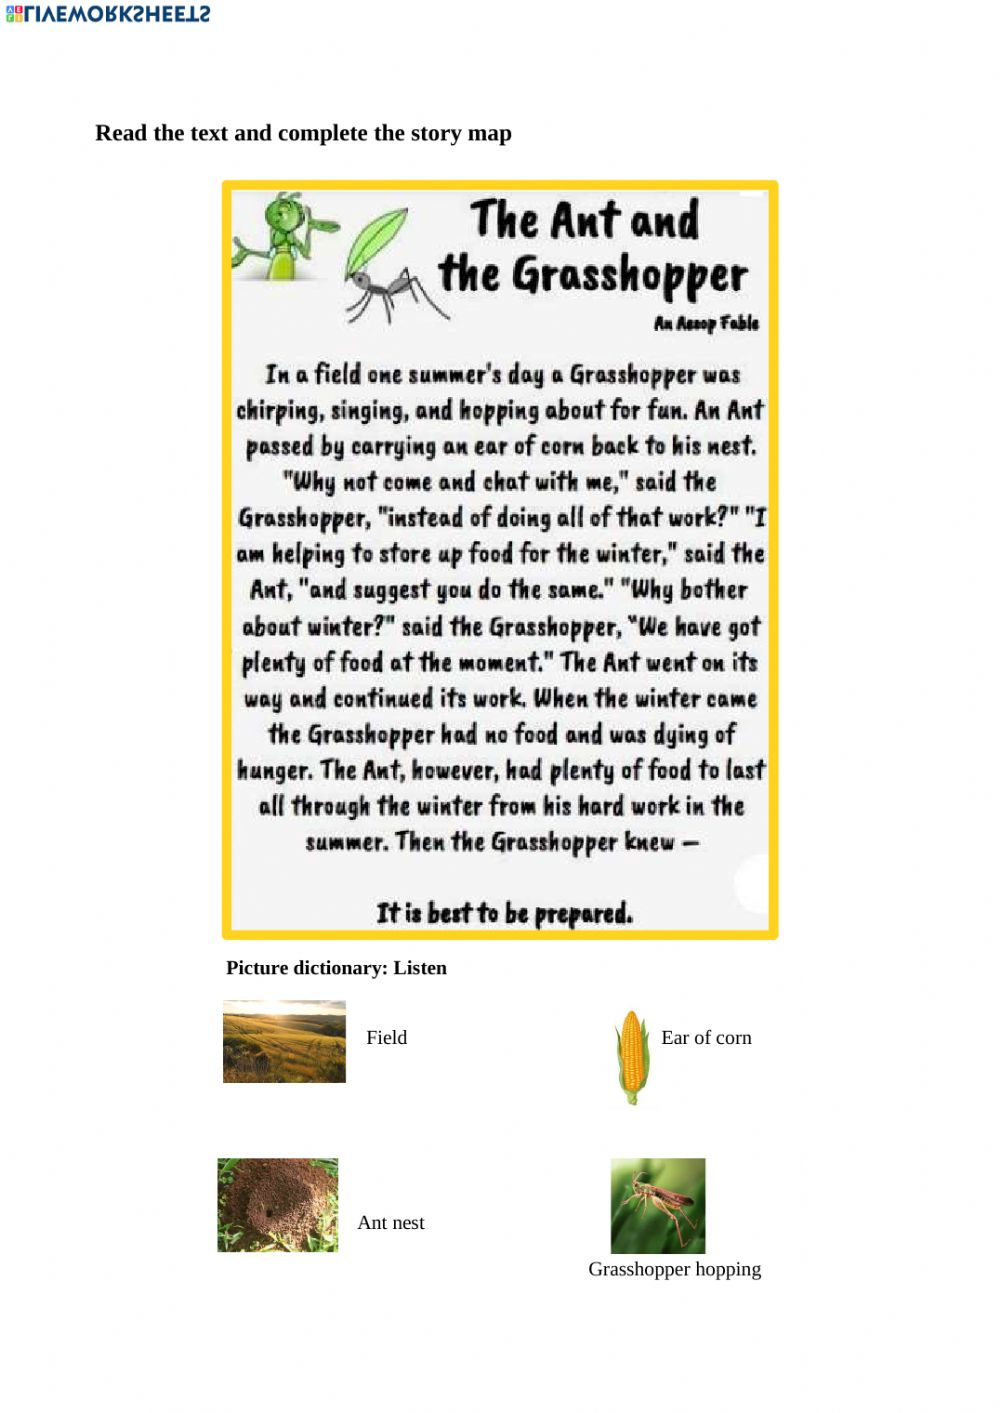 hight resolution of The Ant and the Grasshopper text \u0026 story map worksheet